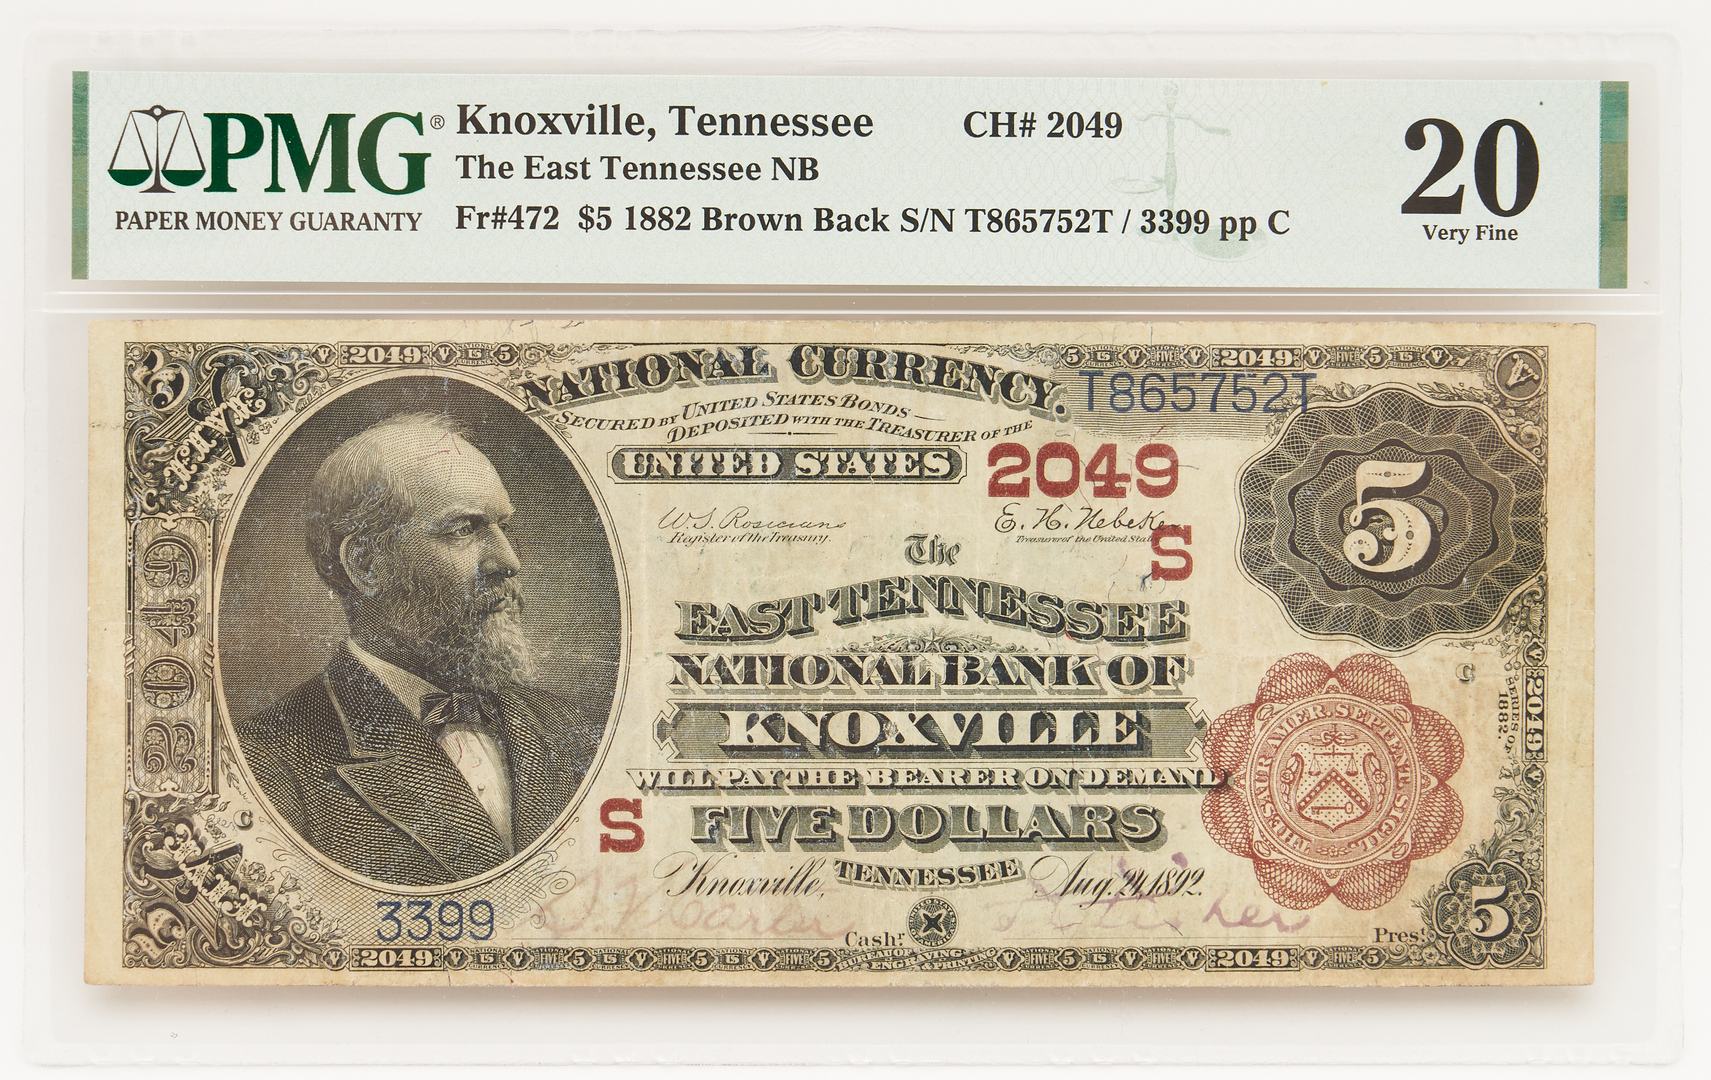 Lot 838: 1882 $5 Brown Back, The East Tennessee National Bank of Knoxville